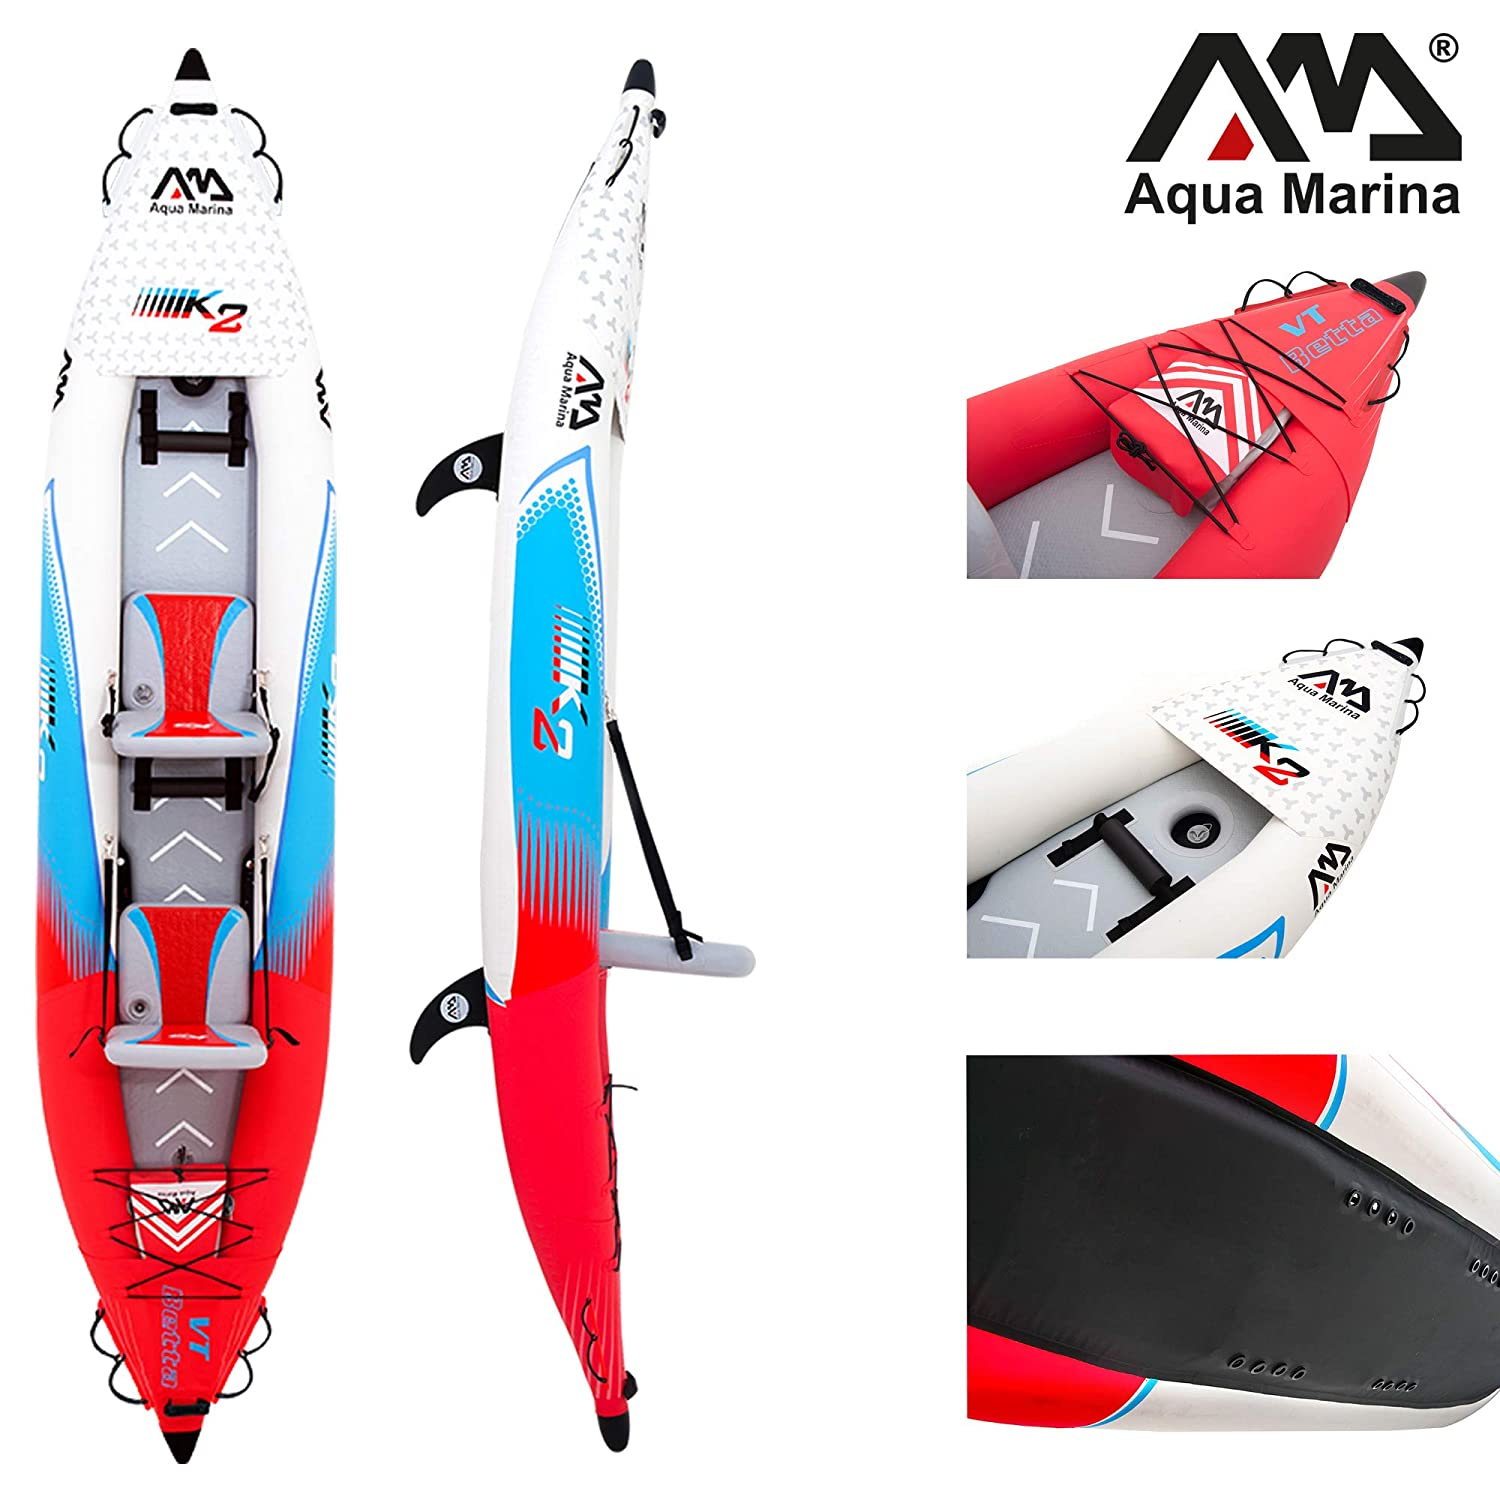 Amazon.com : Aqua Marina 2 Person Inflatable Professional Kayak - Betta : Sports & Outdoors